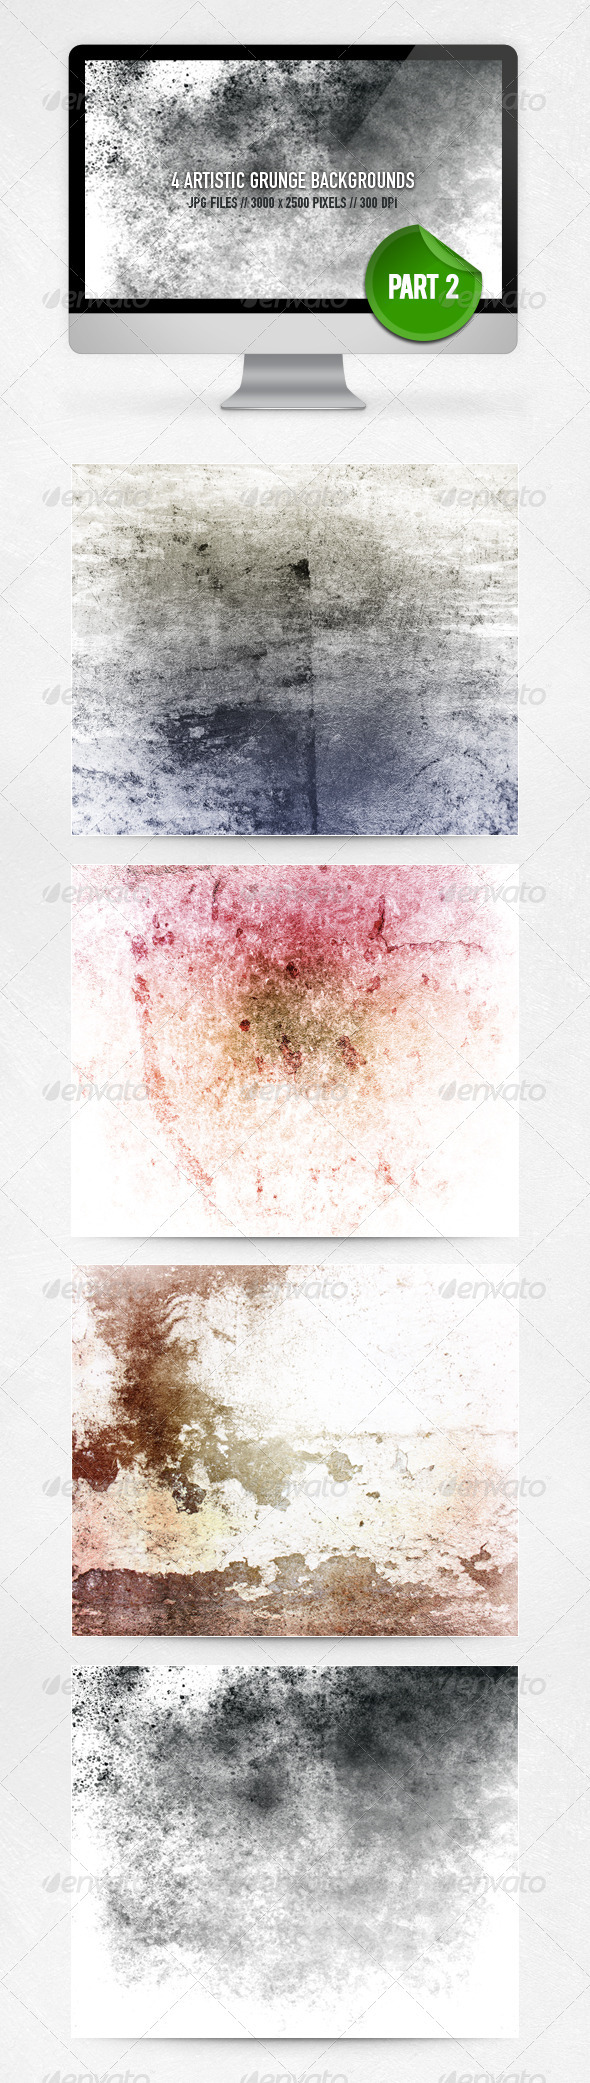 Artistic Grunge Backgrounds - Part 2 - Abstract Backgrounds